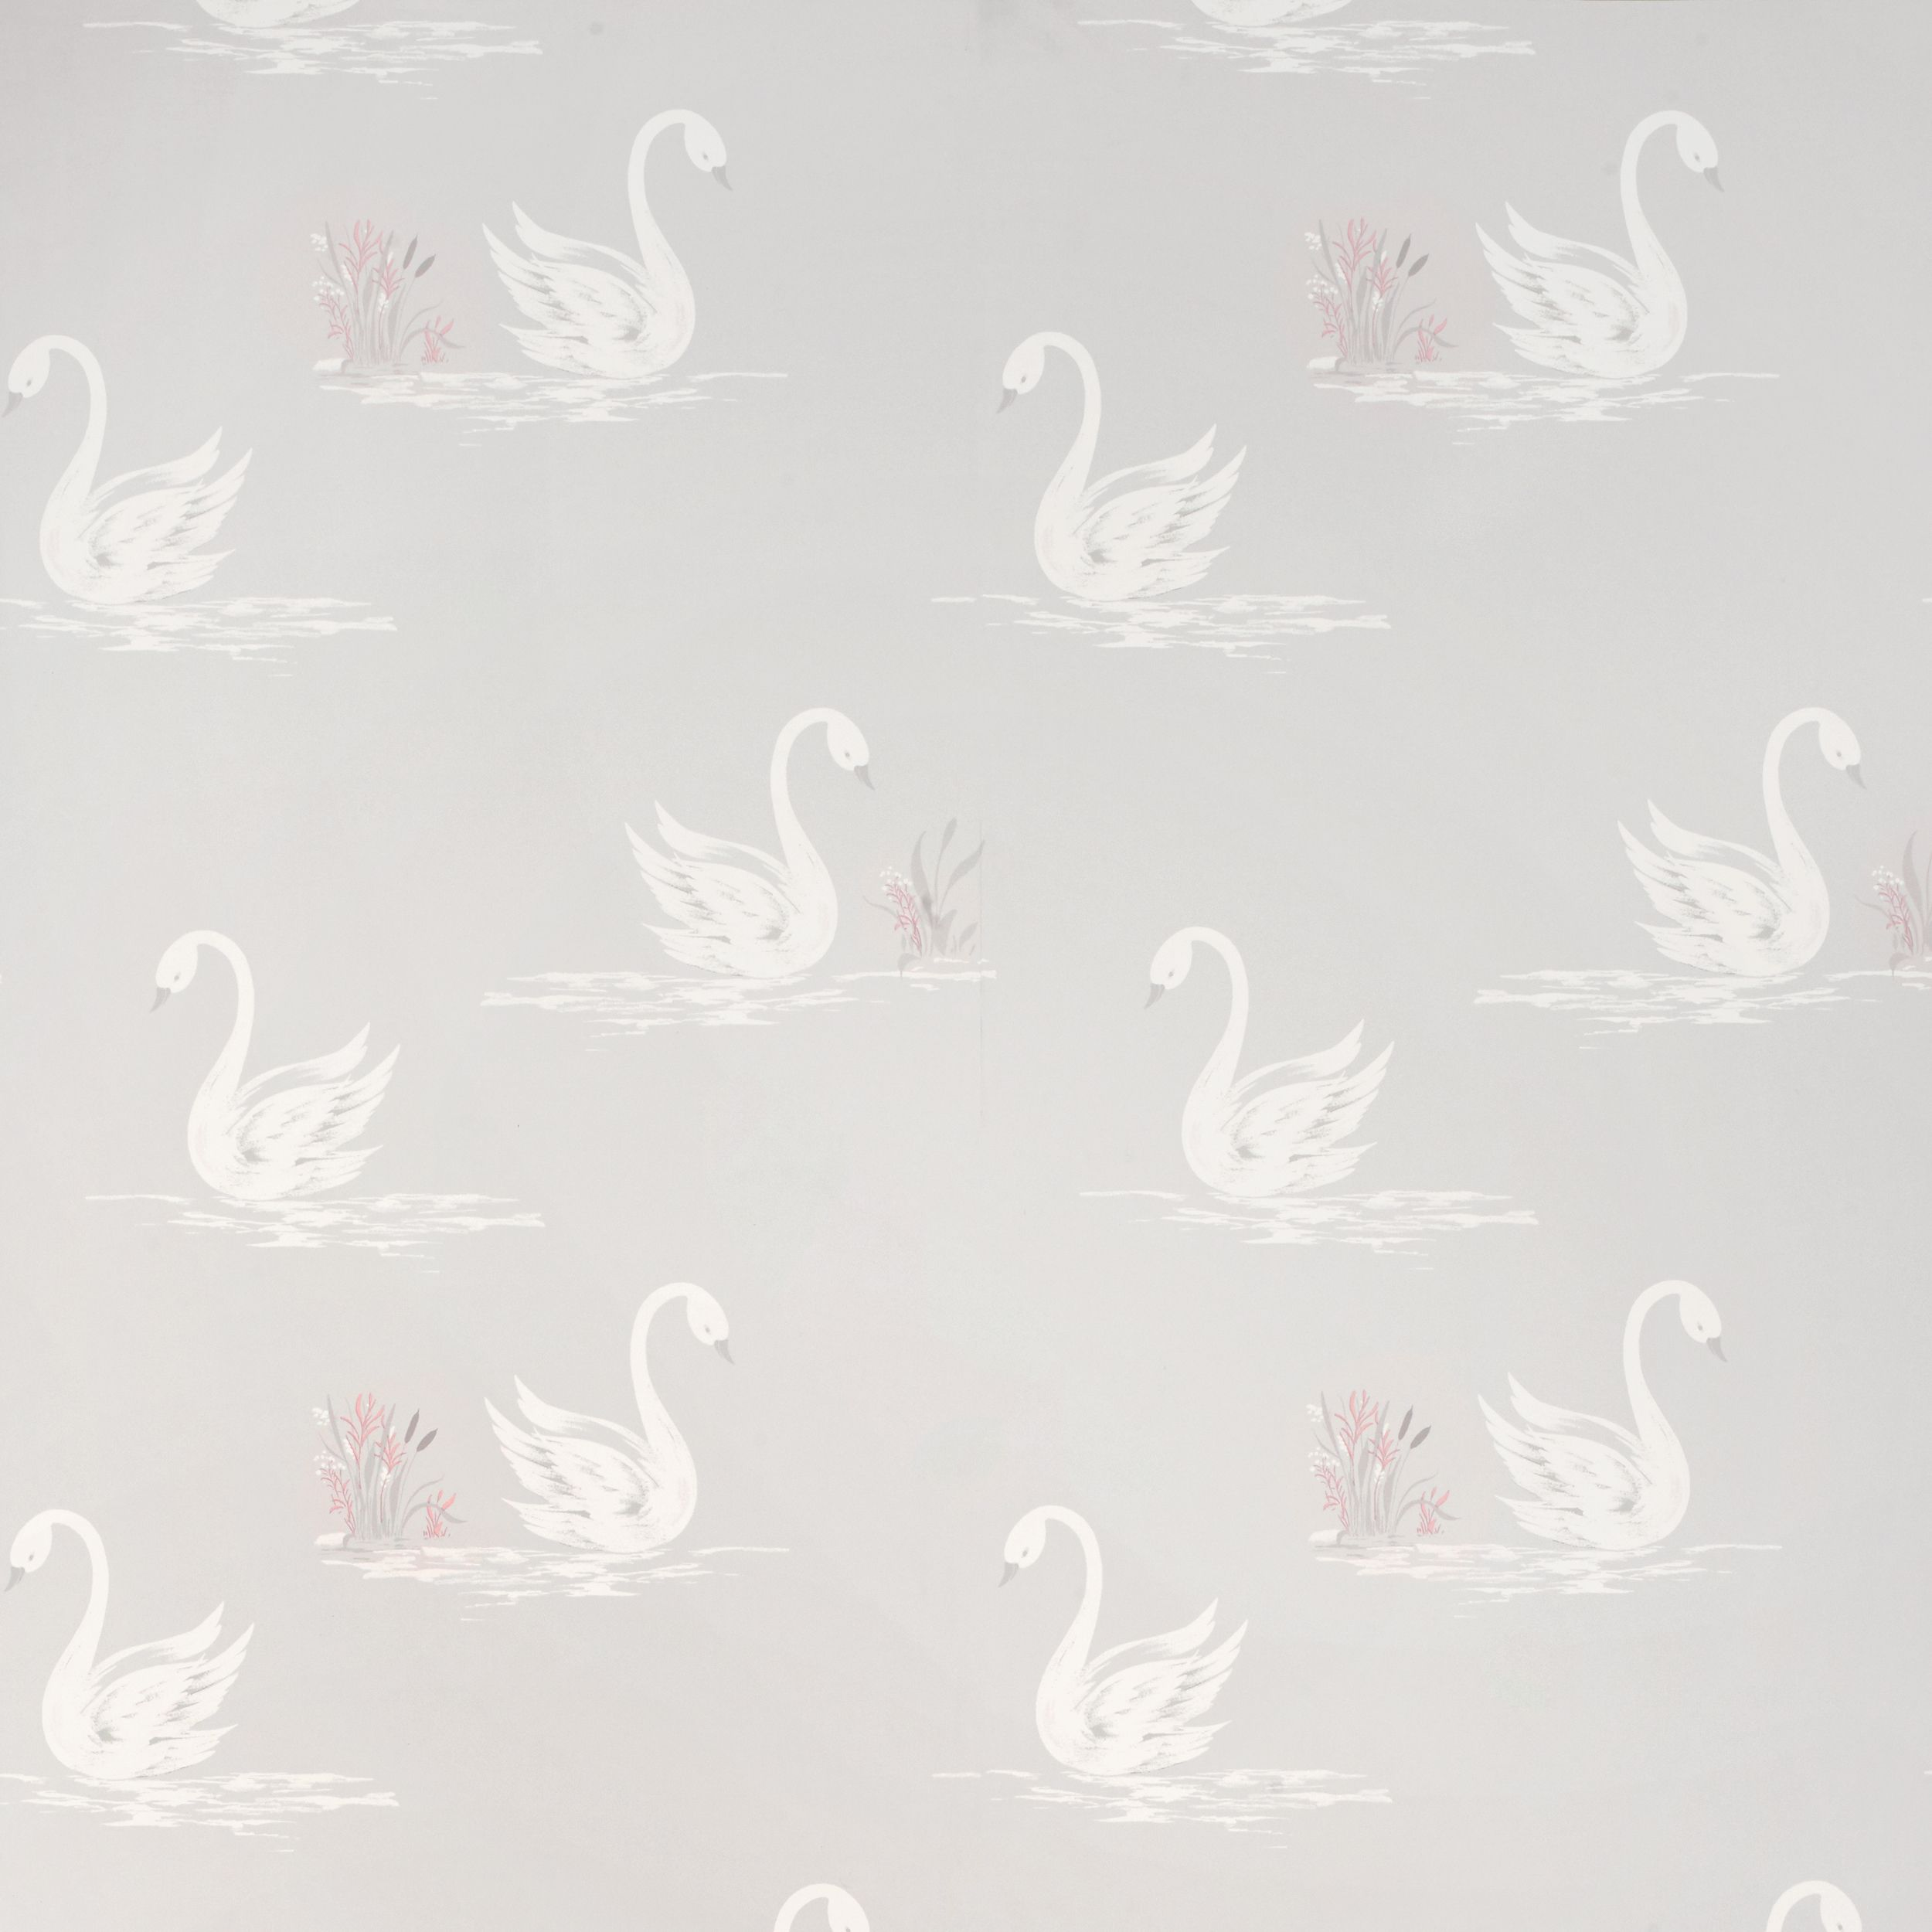 Silver Wallpaper For Bedrooms Laura Ashley Swans Silver Wallpaper Home Pinterest Swans